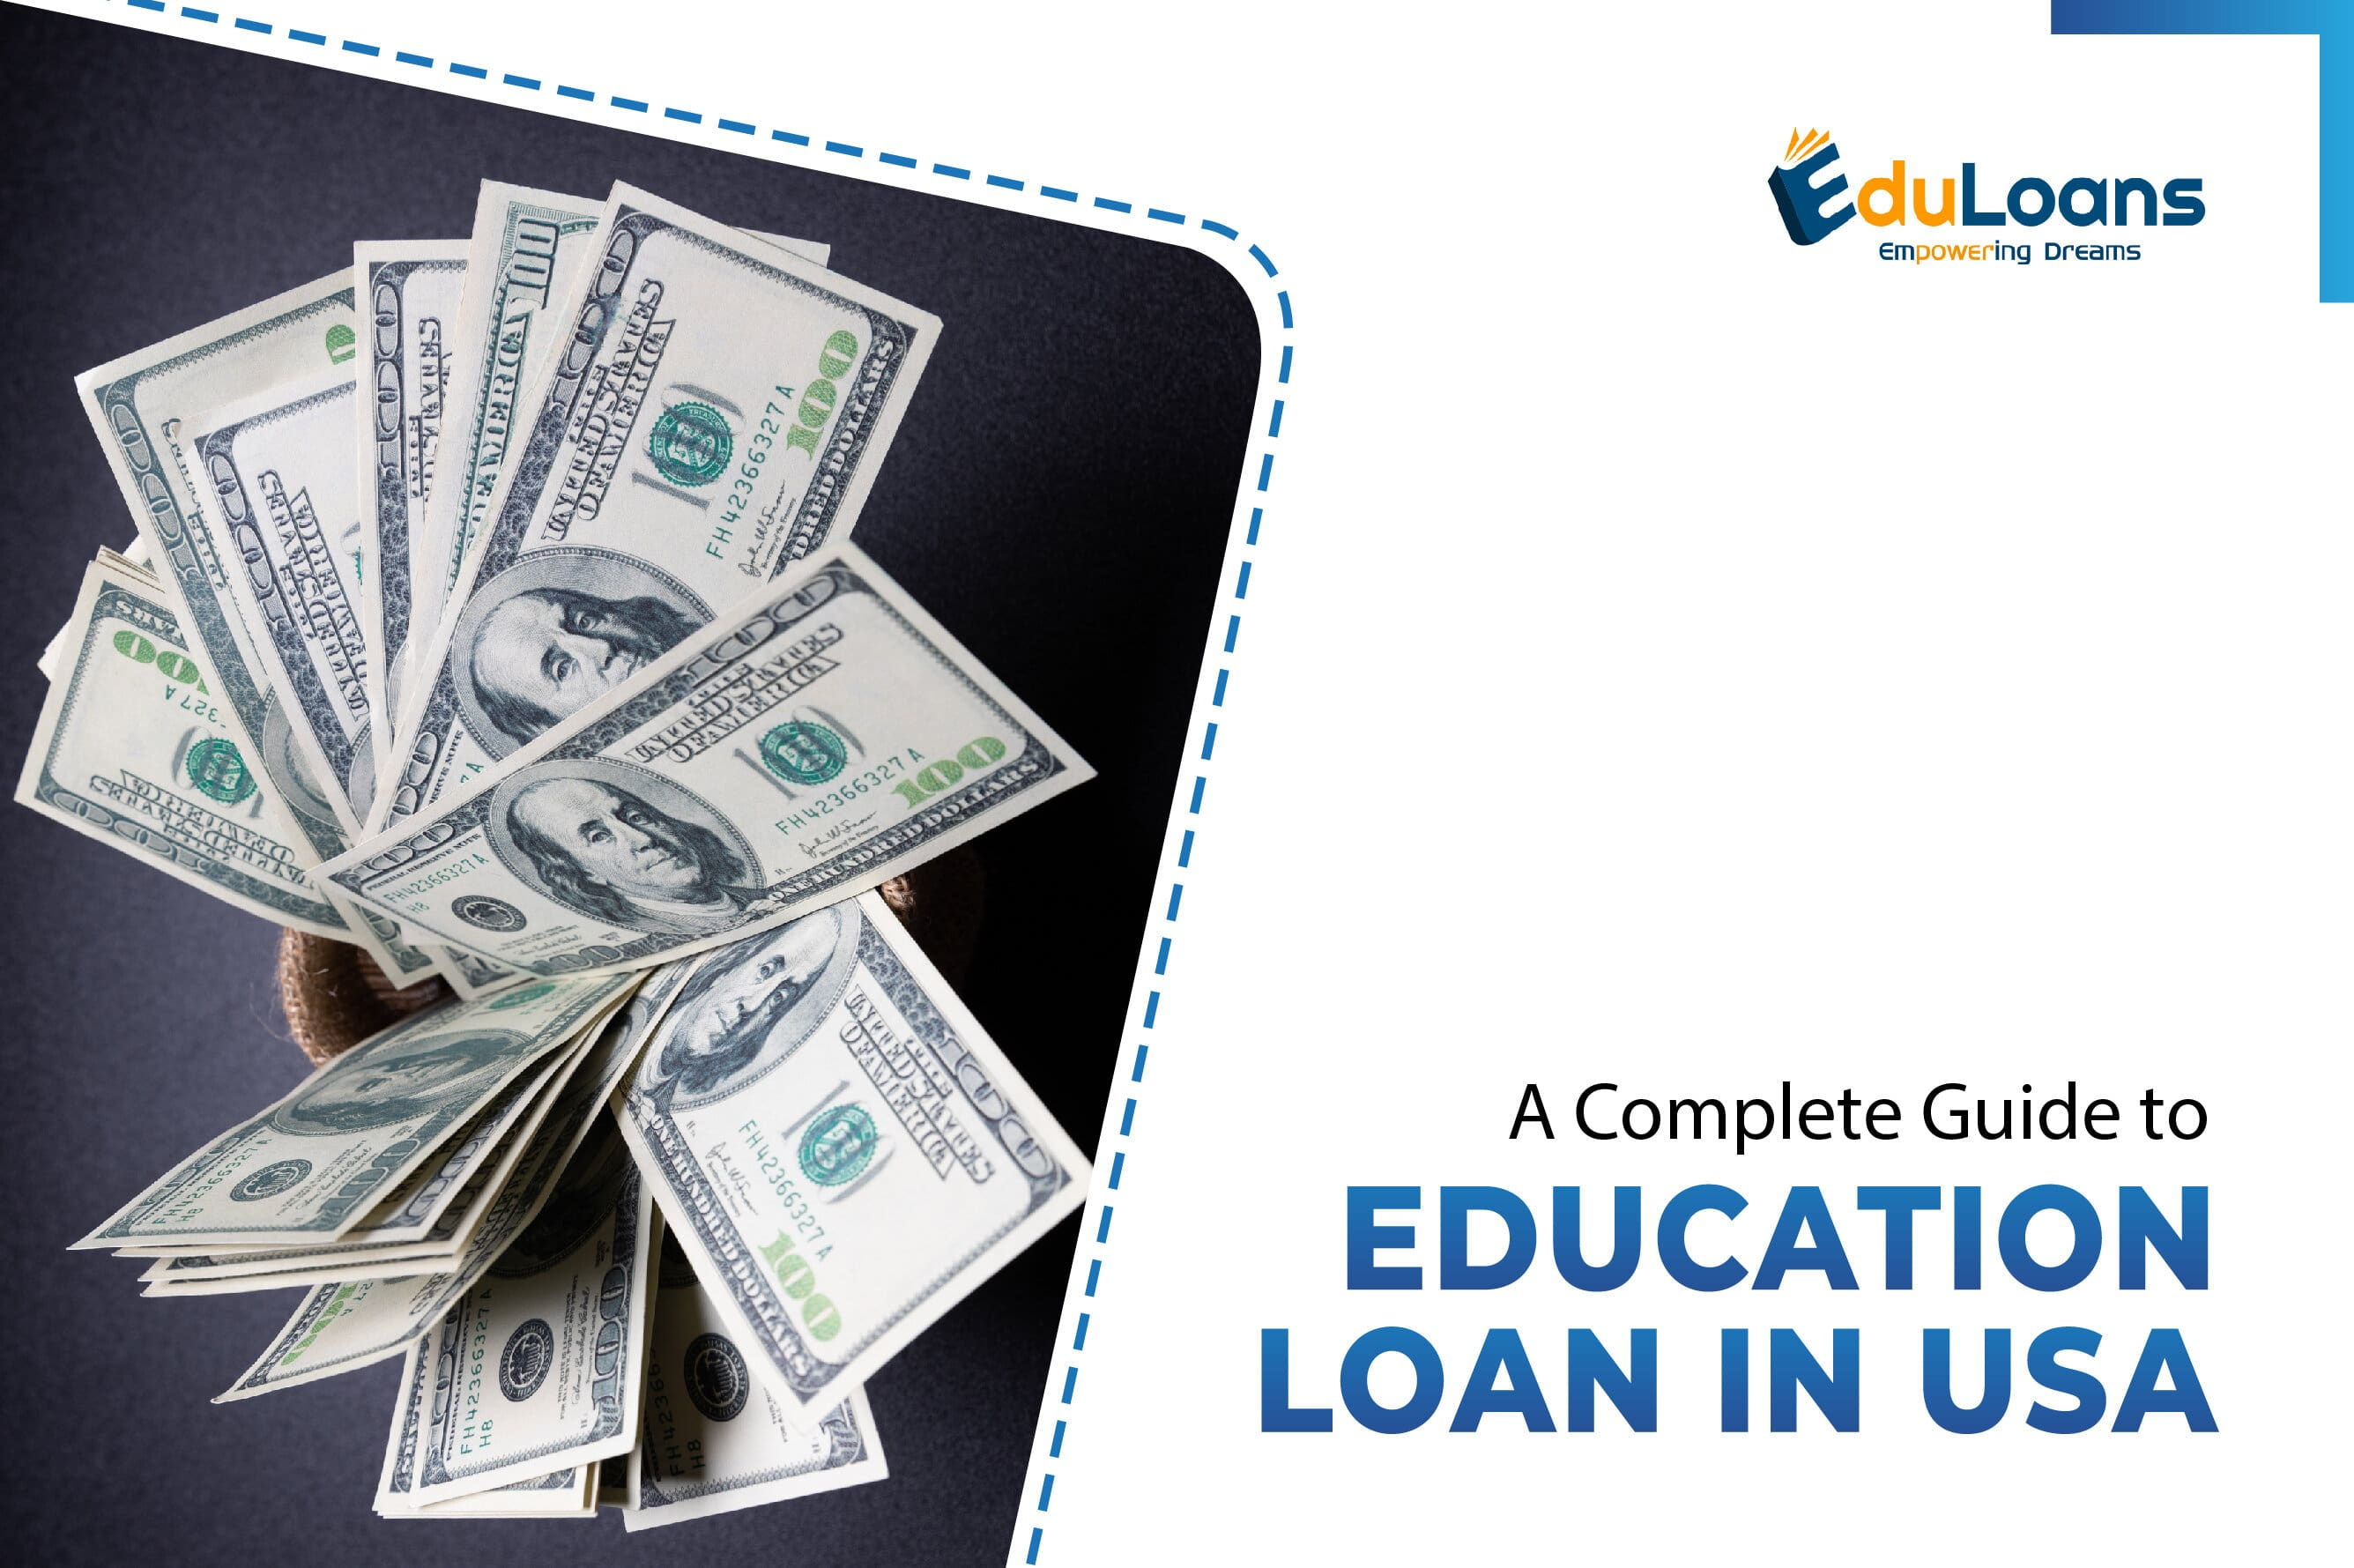 A Complete Guide to Education Loan in USA